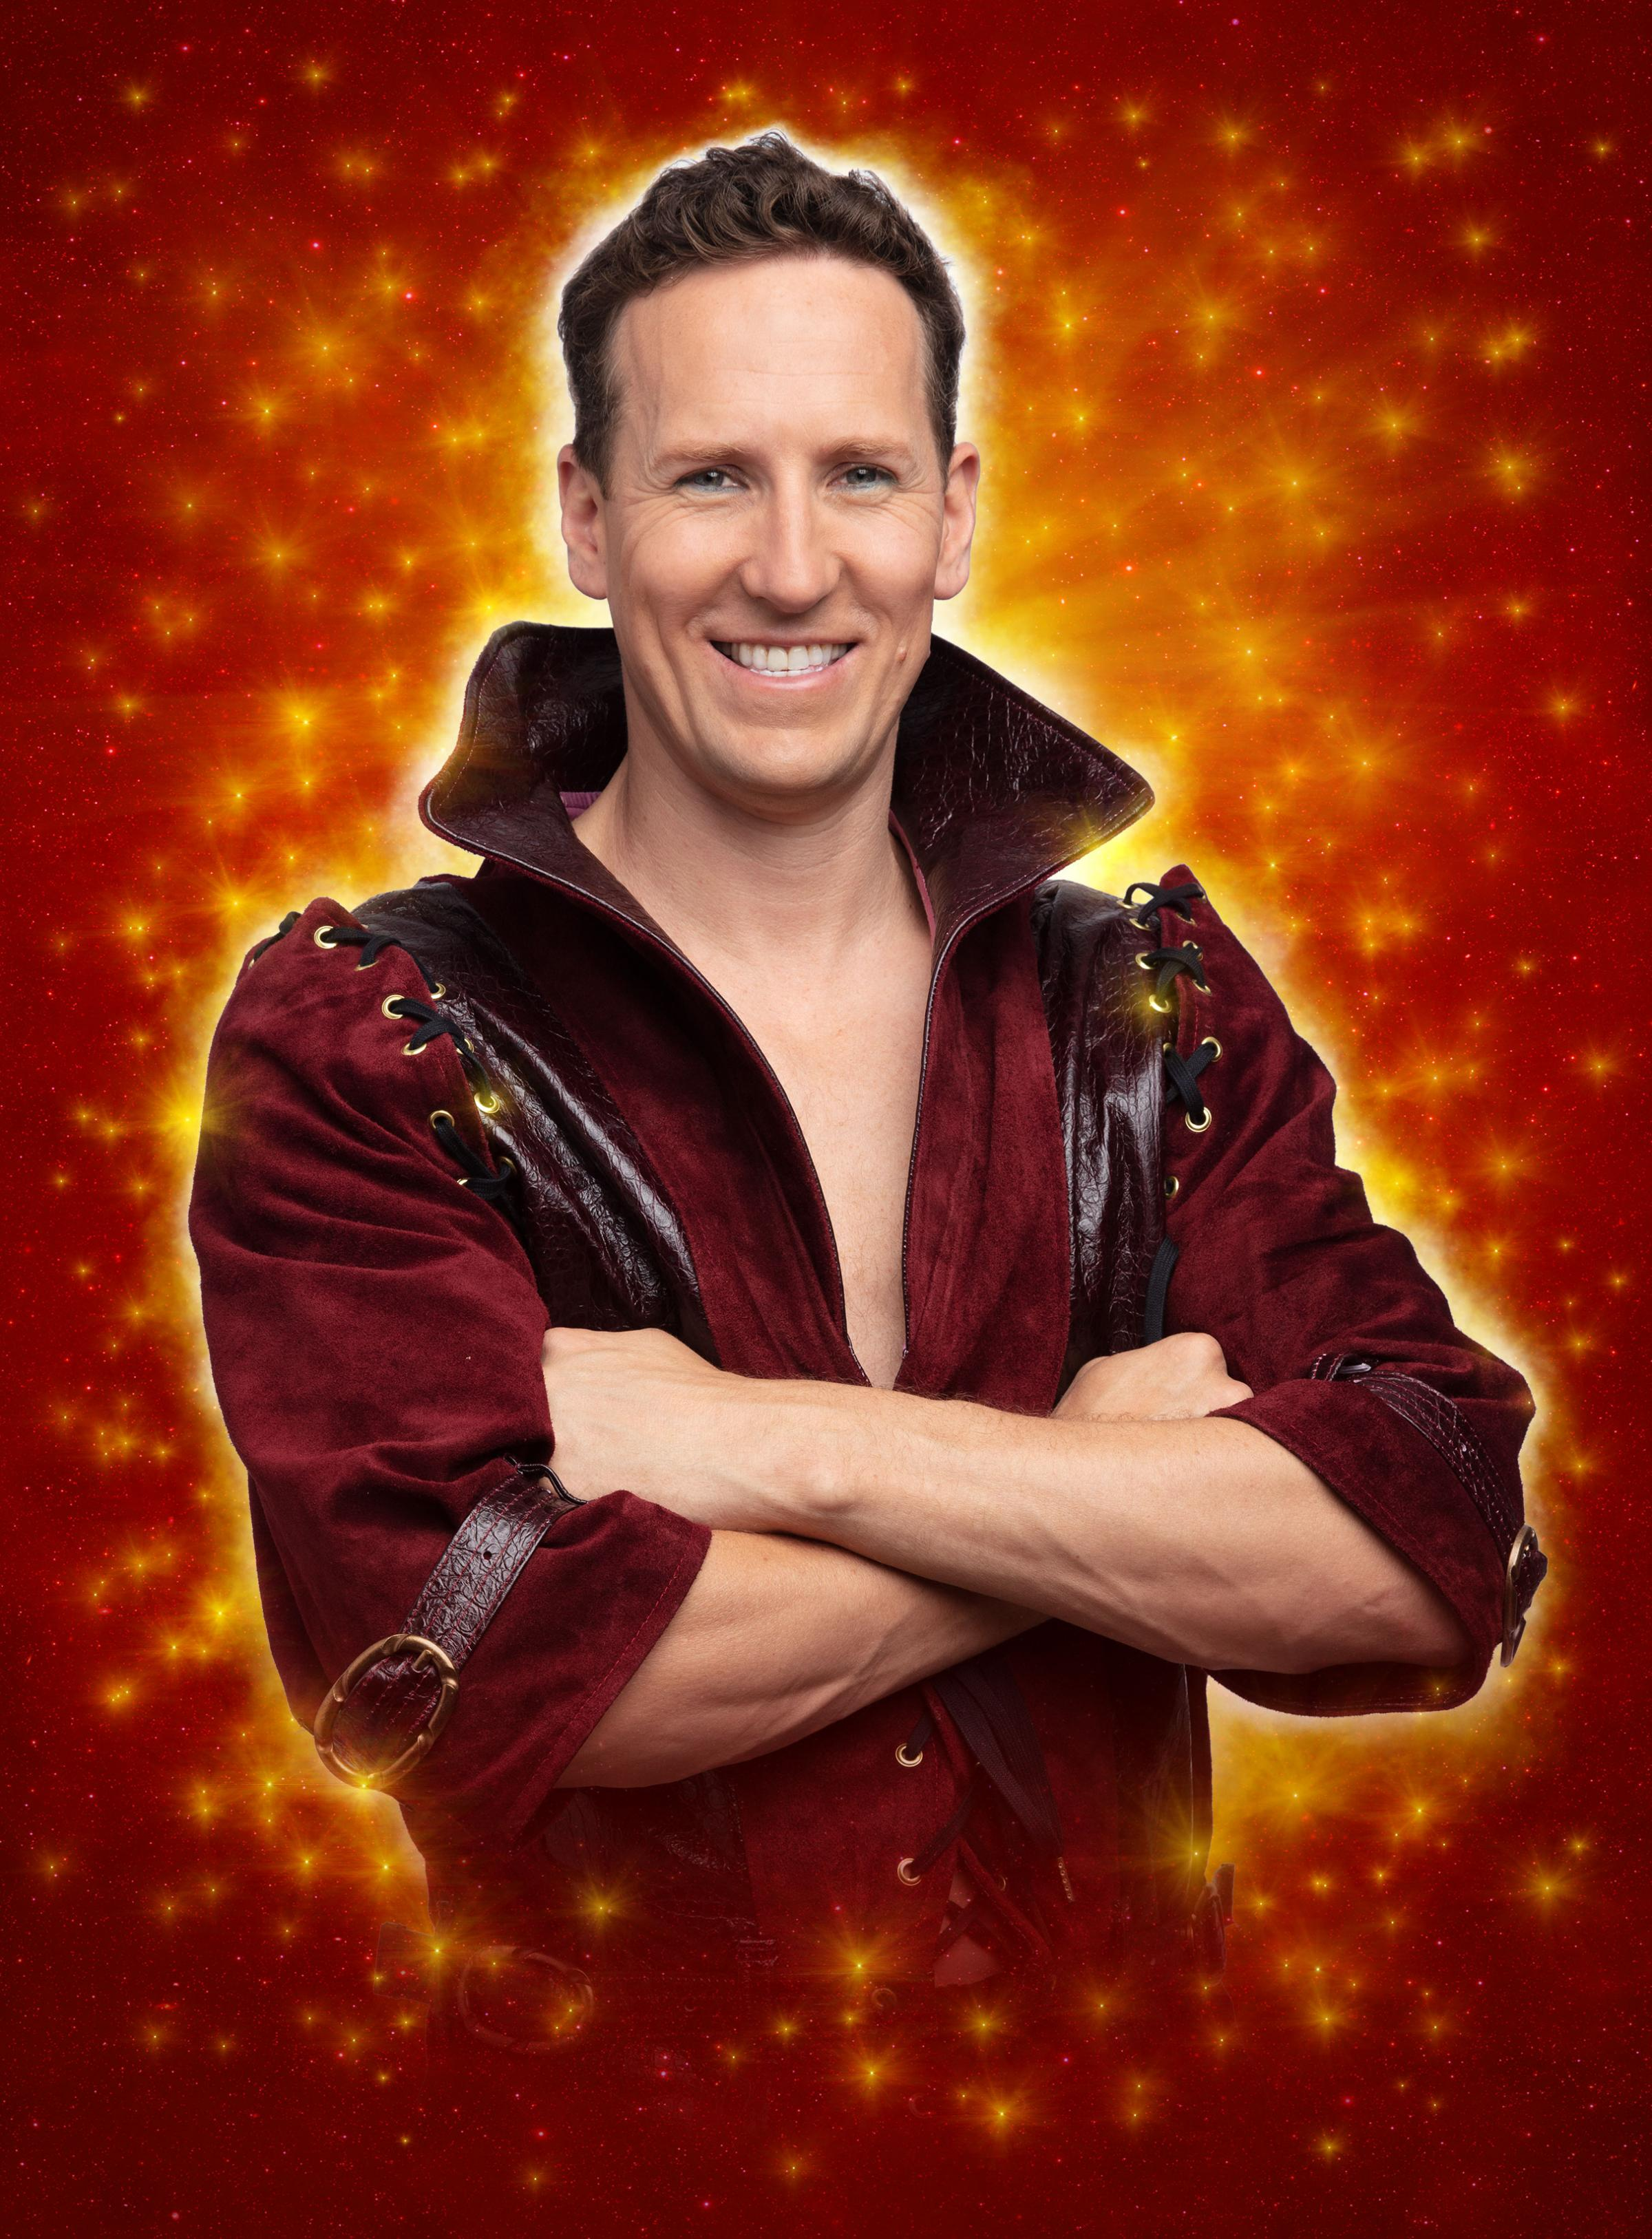 Strictly star Brendan Cole to make panto debut in High Wycombe